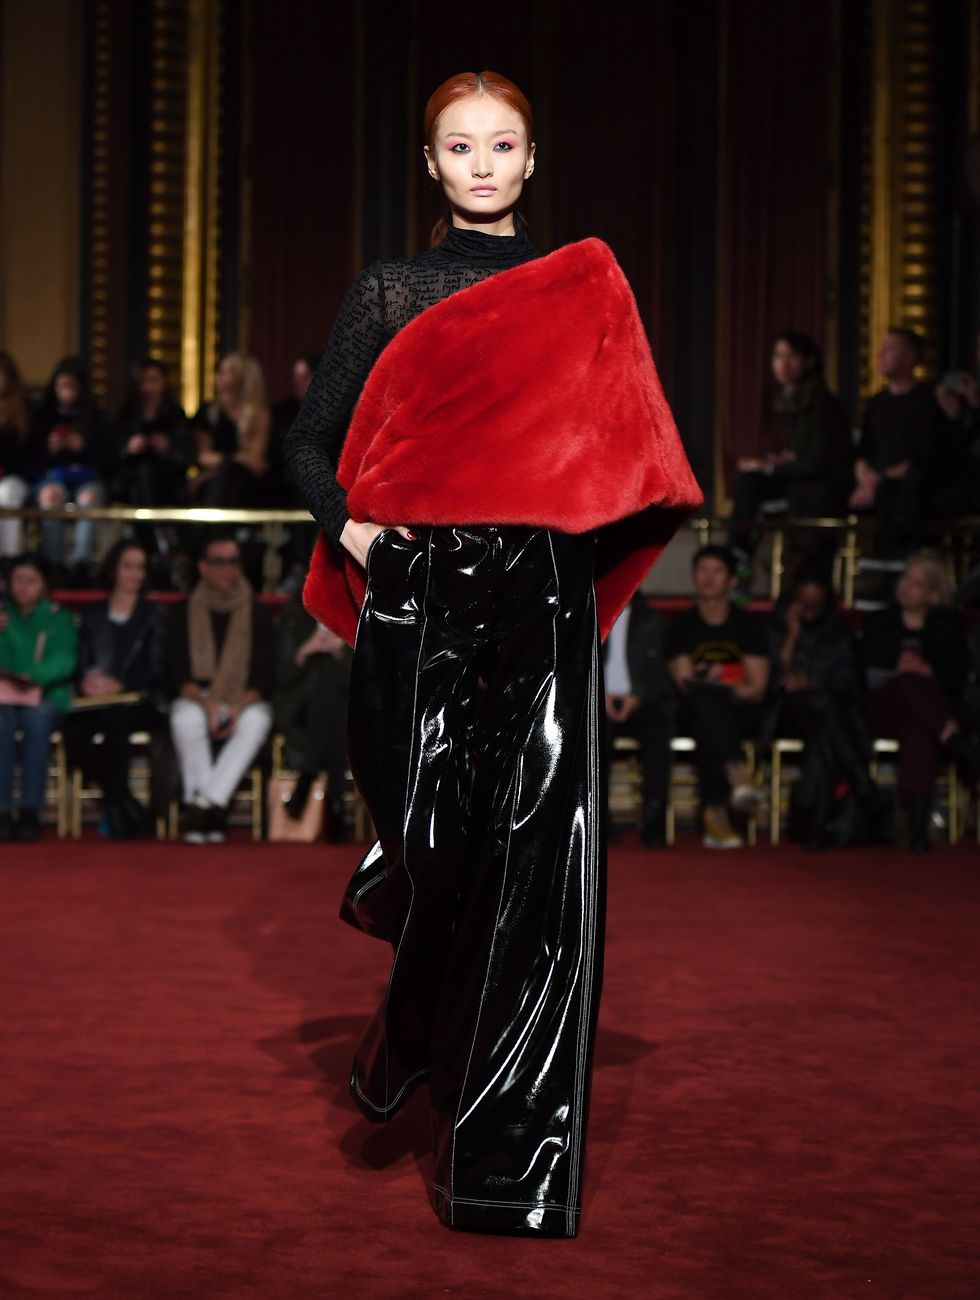 Christian Siriano - NYFW Fall '18